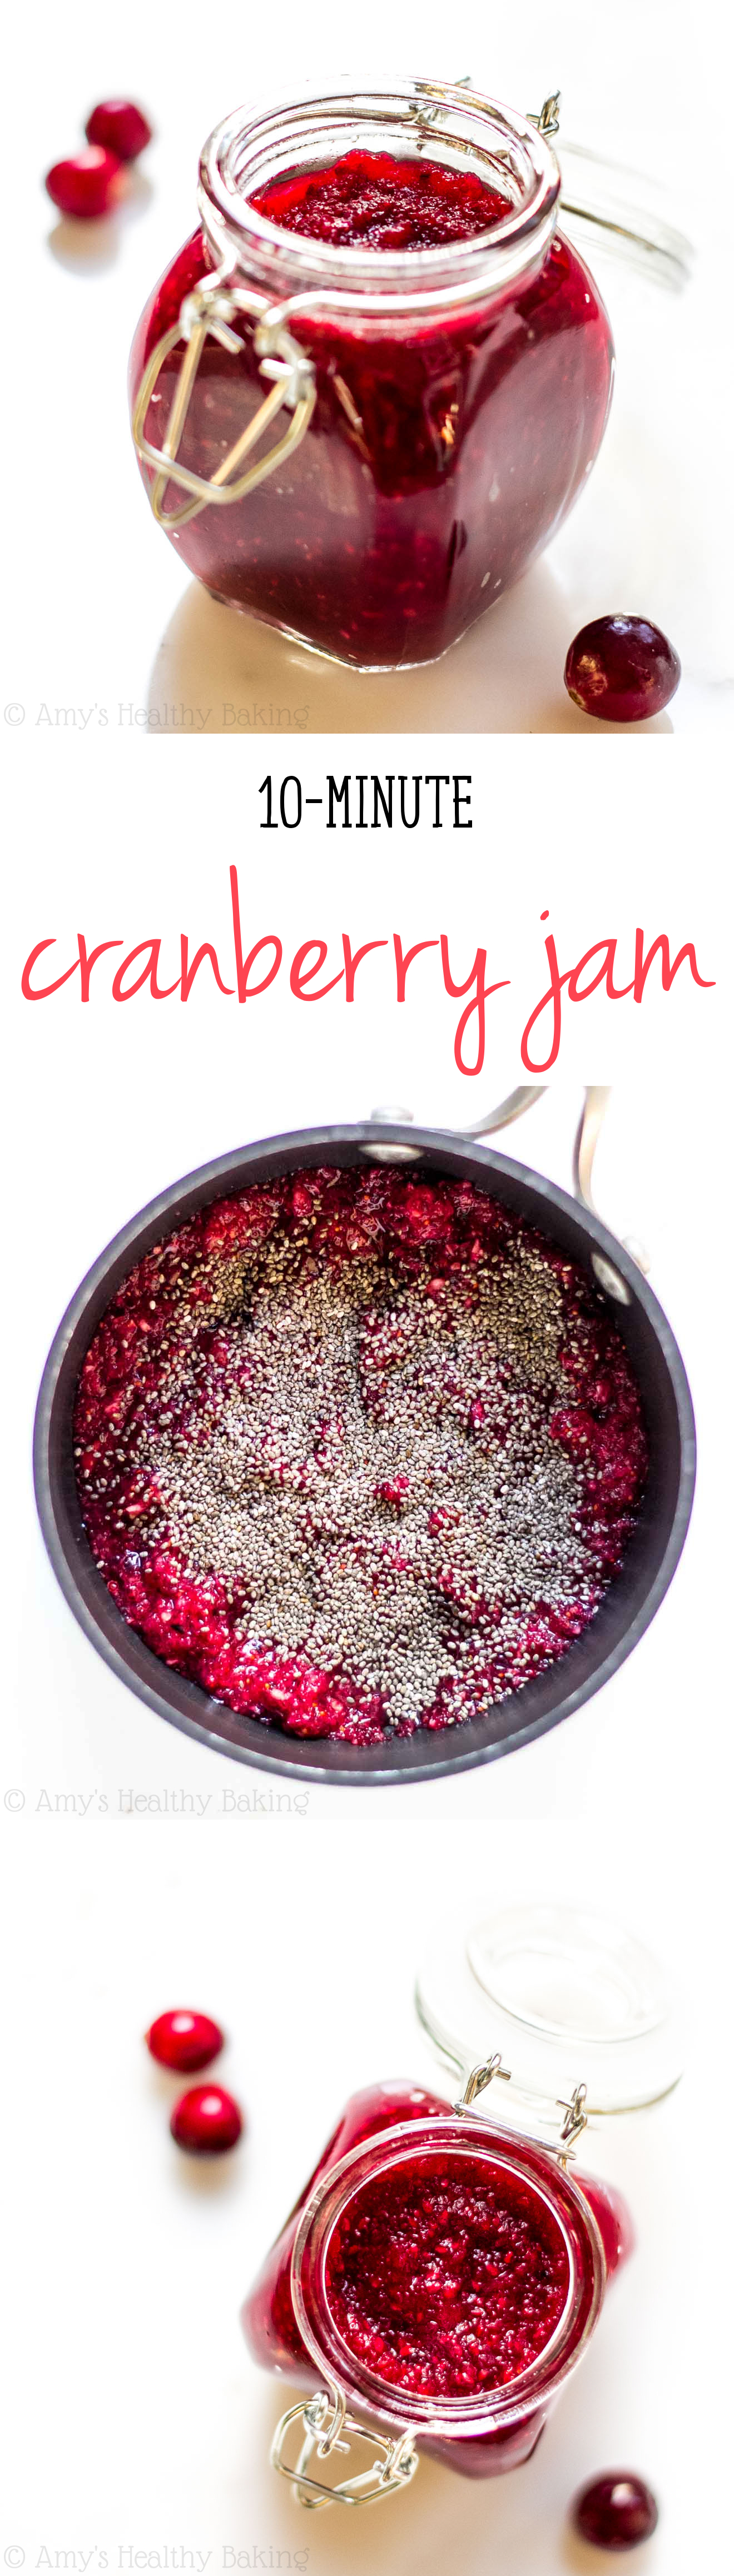 This is the EASIEST jam you'll ever make! You just need 4 healthy ingredients & 10 minutes. It's perfect for gifts during the holidays too!